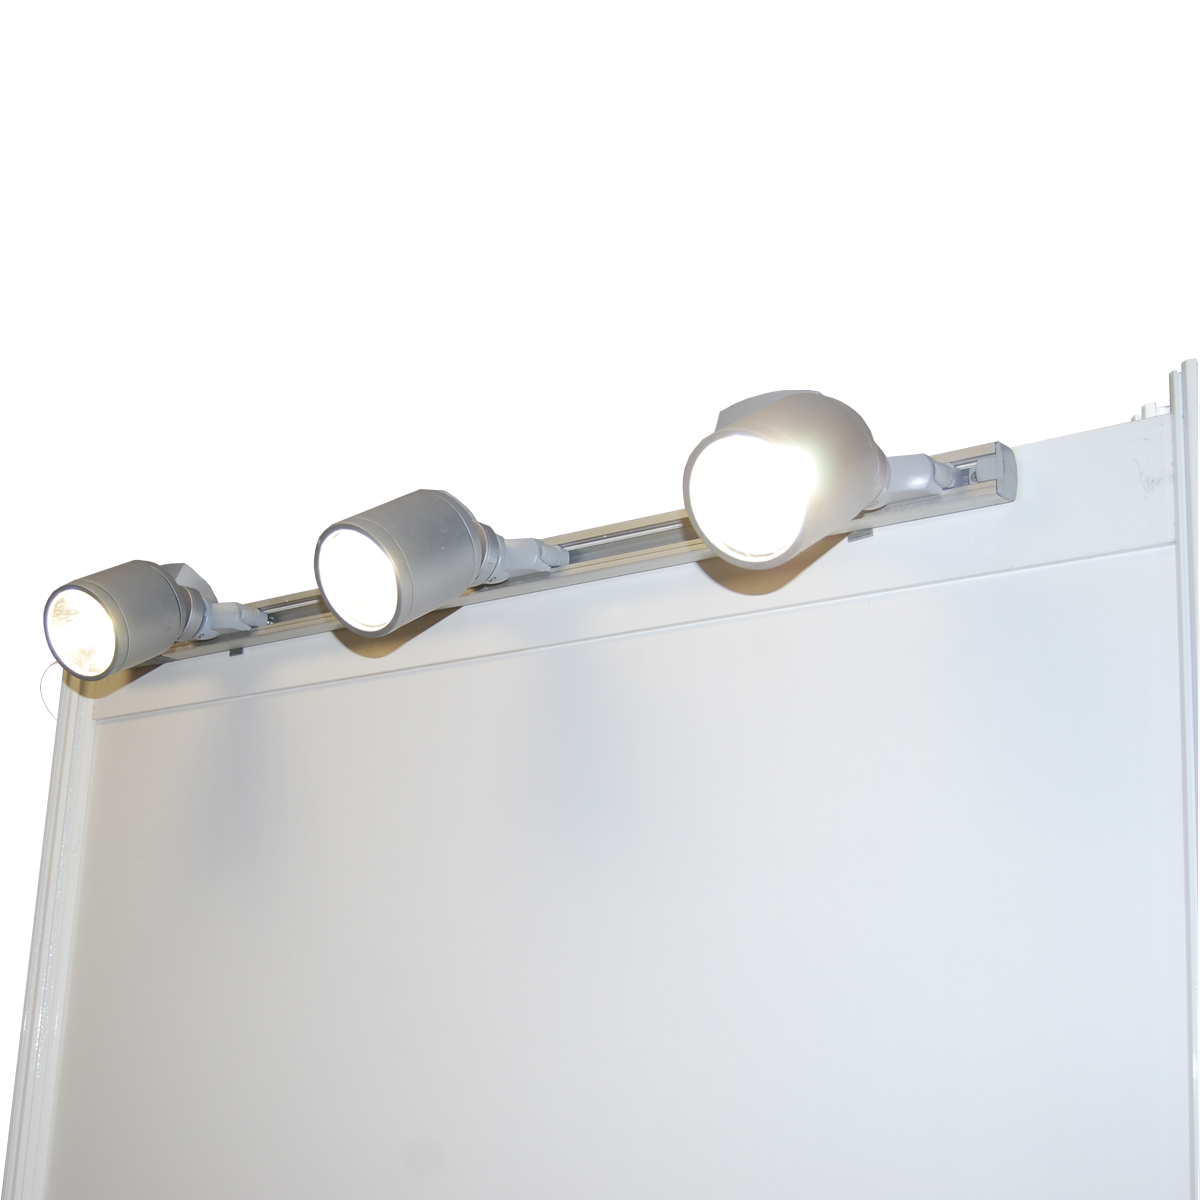 Rail De Spot Rail De 3 Spots Cob Led Internation Moduling